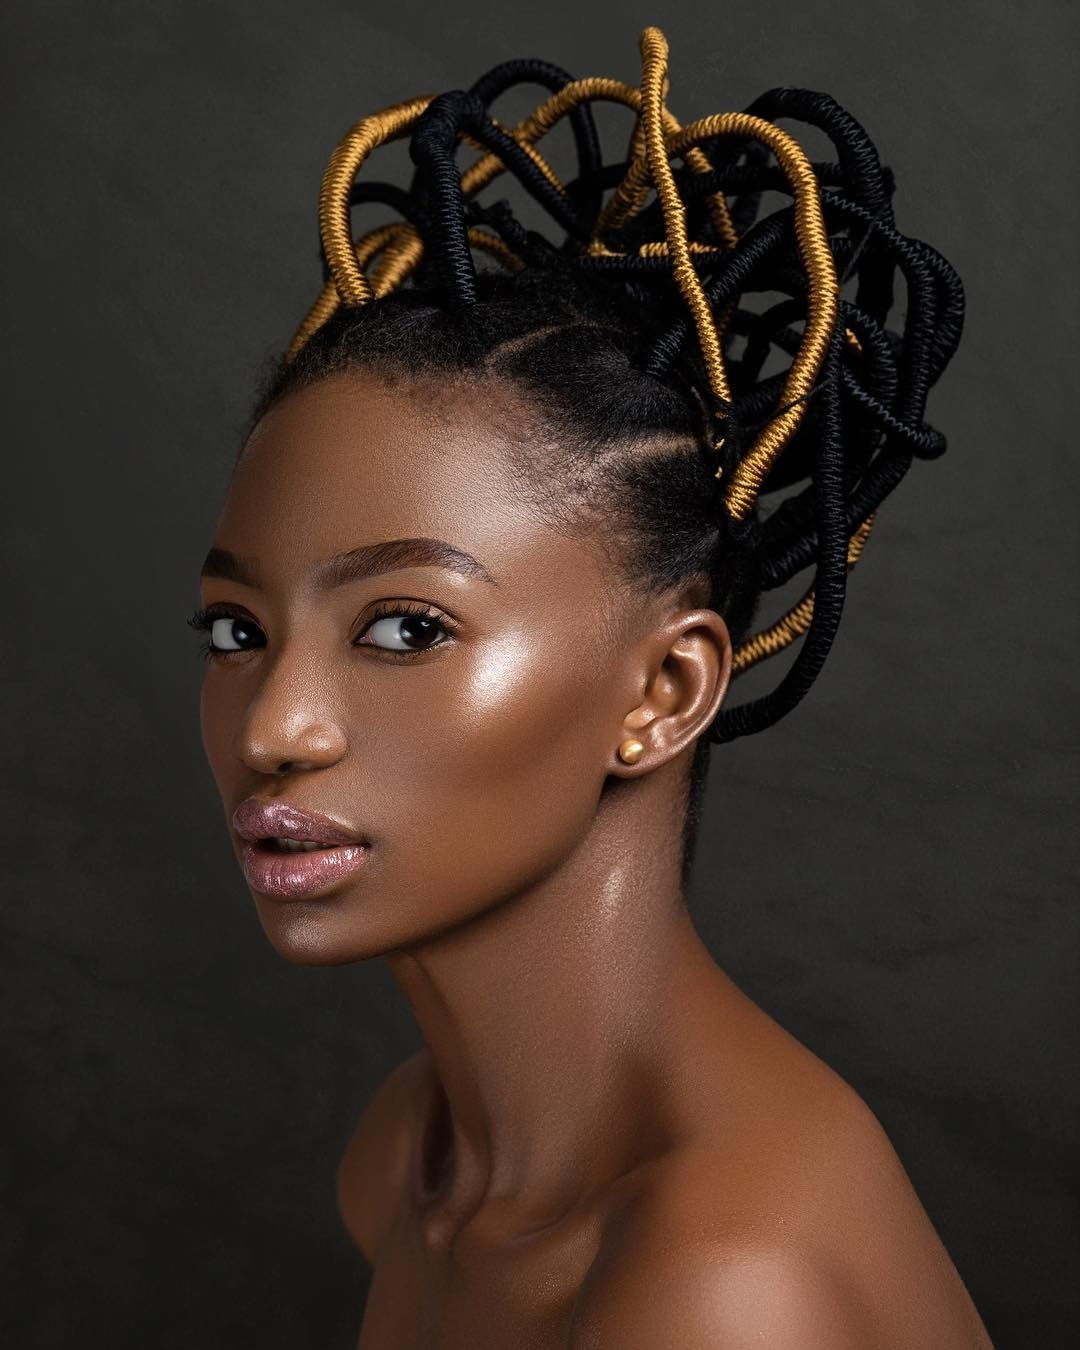 Latest Spring hairstyles, makeup ideas for women -   13 spring hairstyles For Black Women ideas